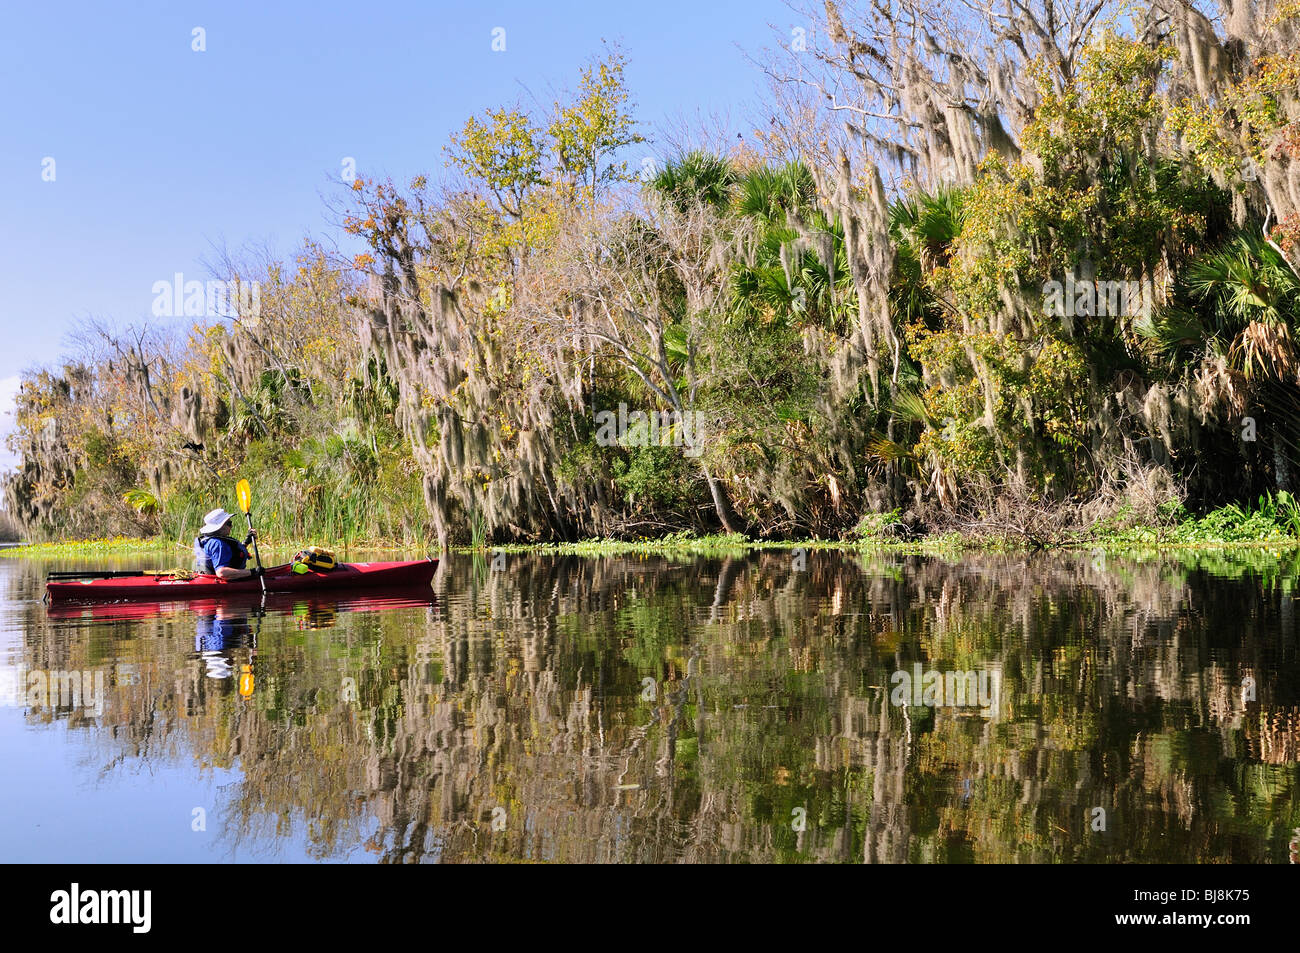 A kayaker paddles on Spring Garden Run - Stock Image